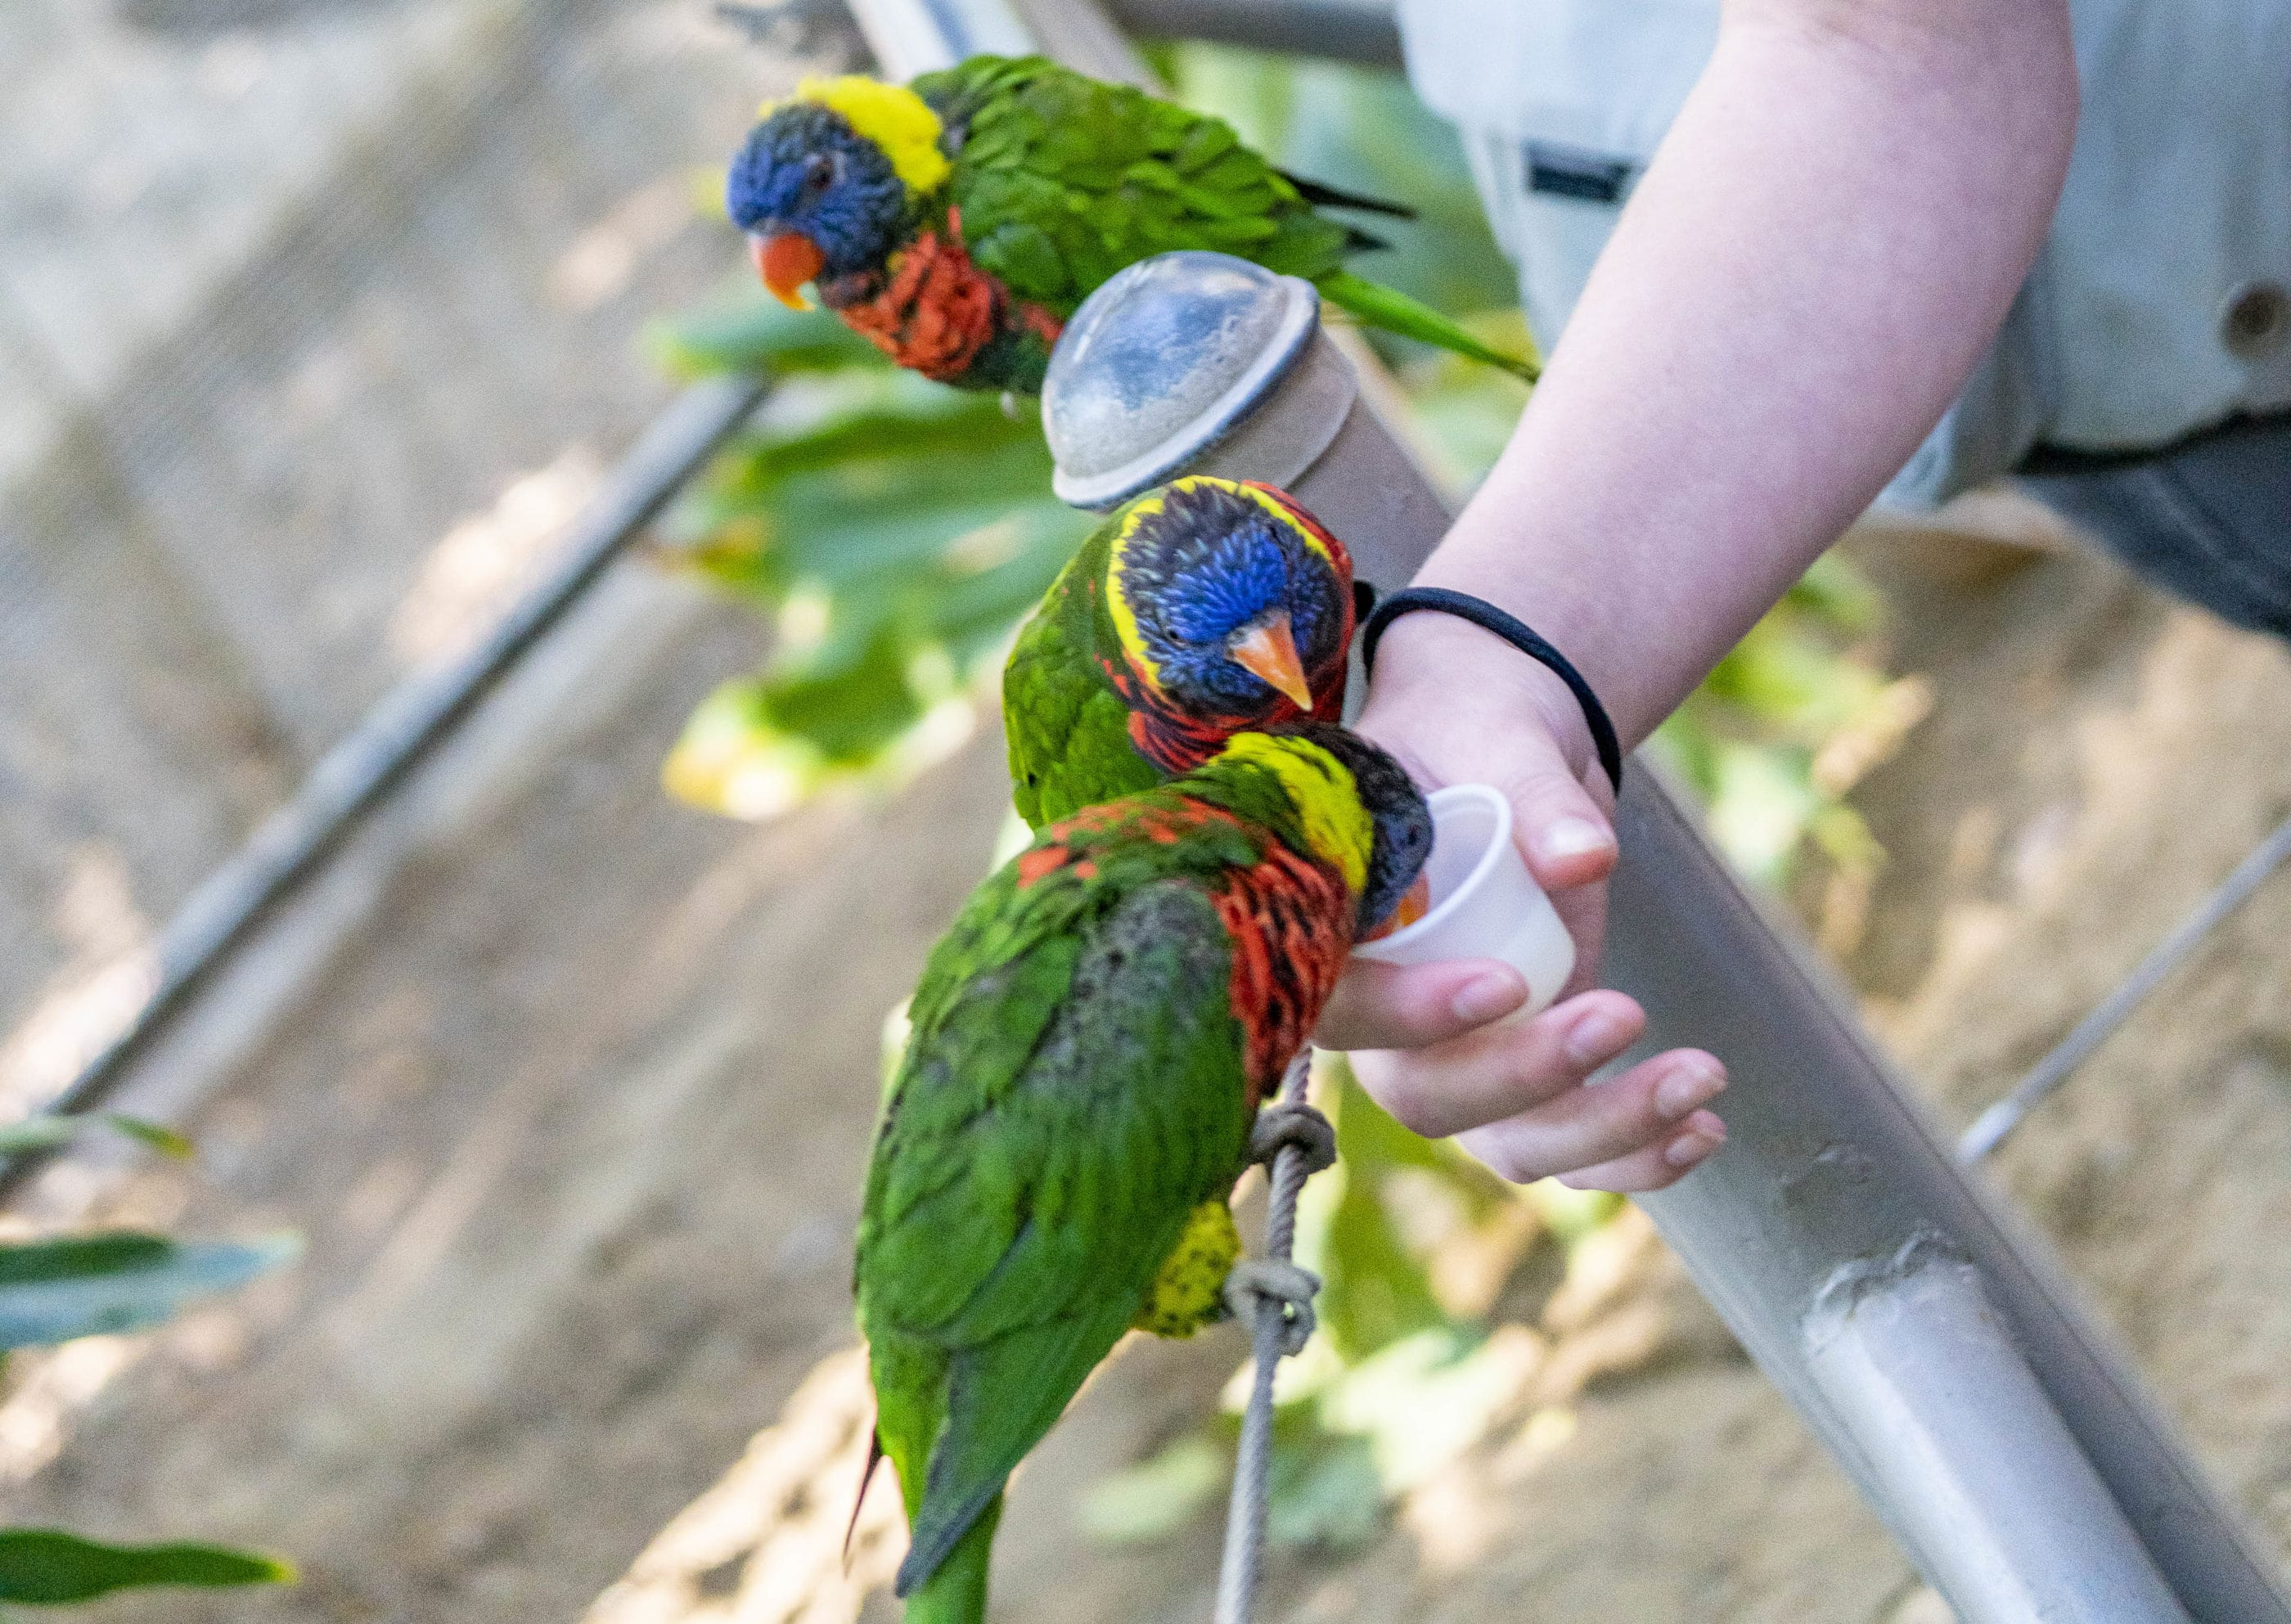 Two lorikeets try to feed from a small cup of nectar that my daughter is holding.